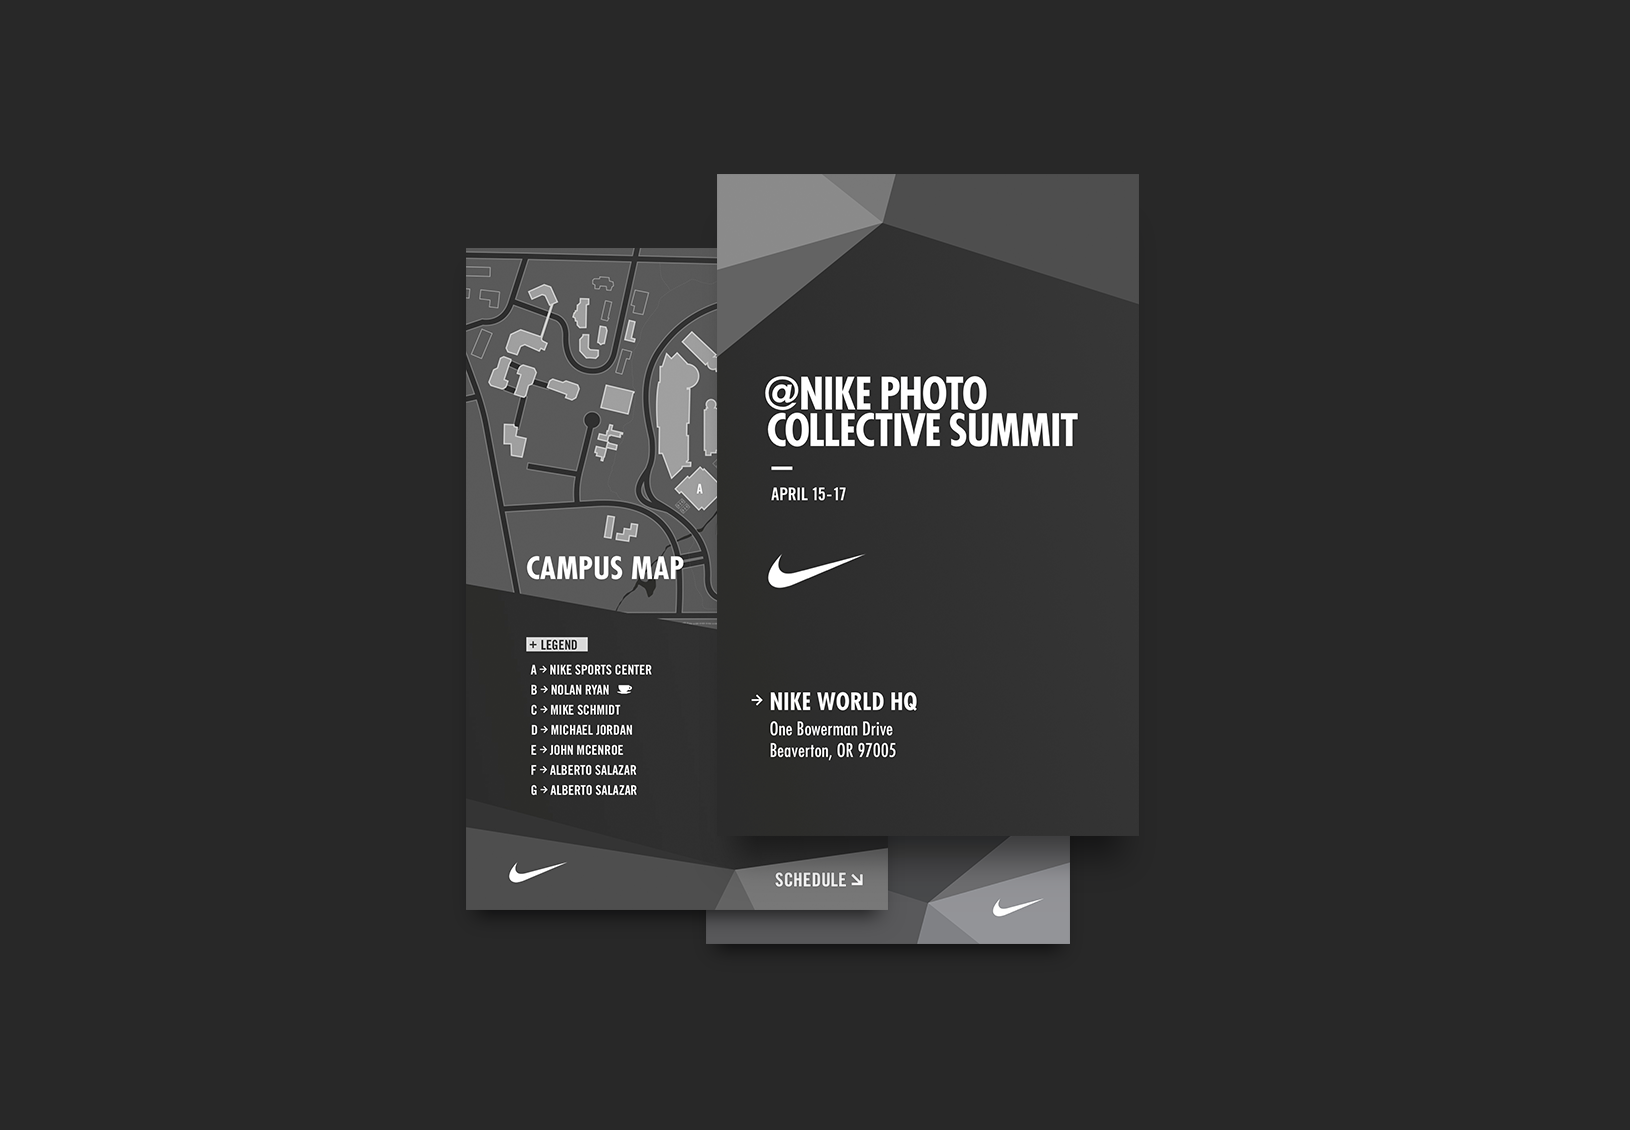 Nike Photo Collective Summit